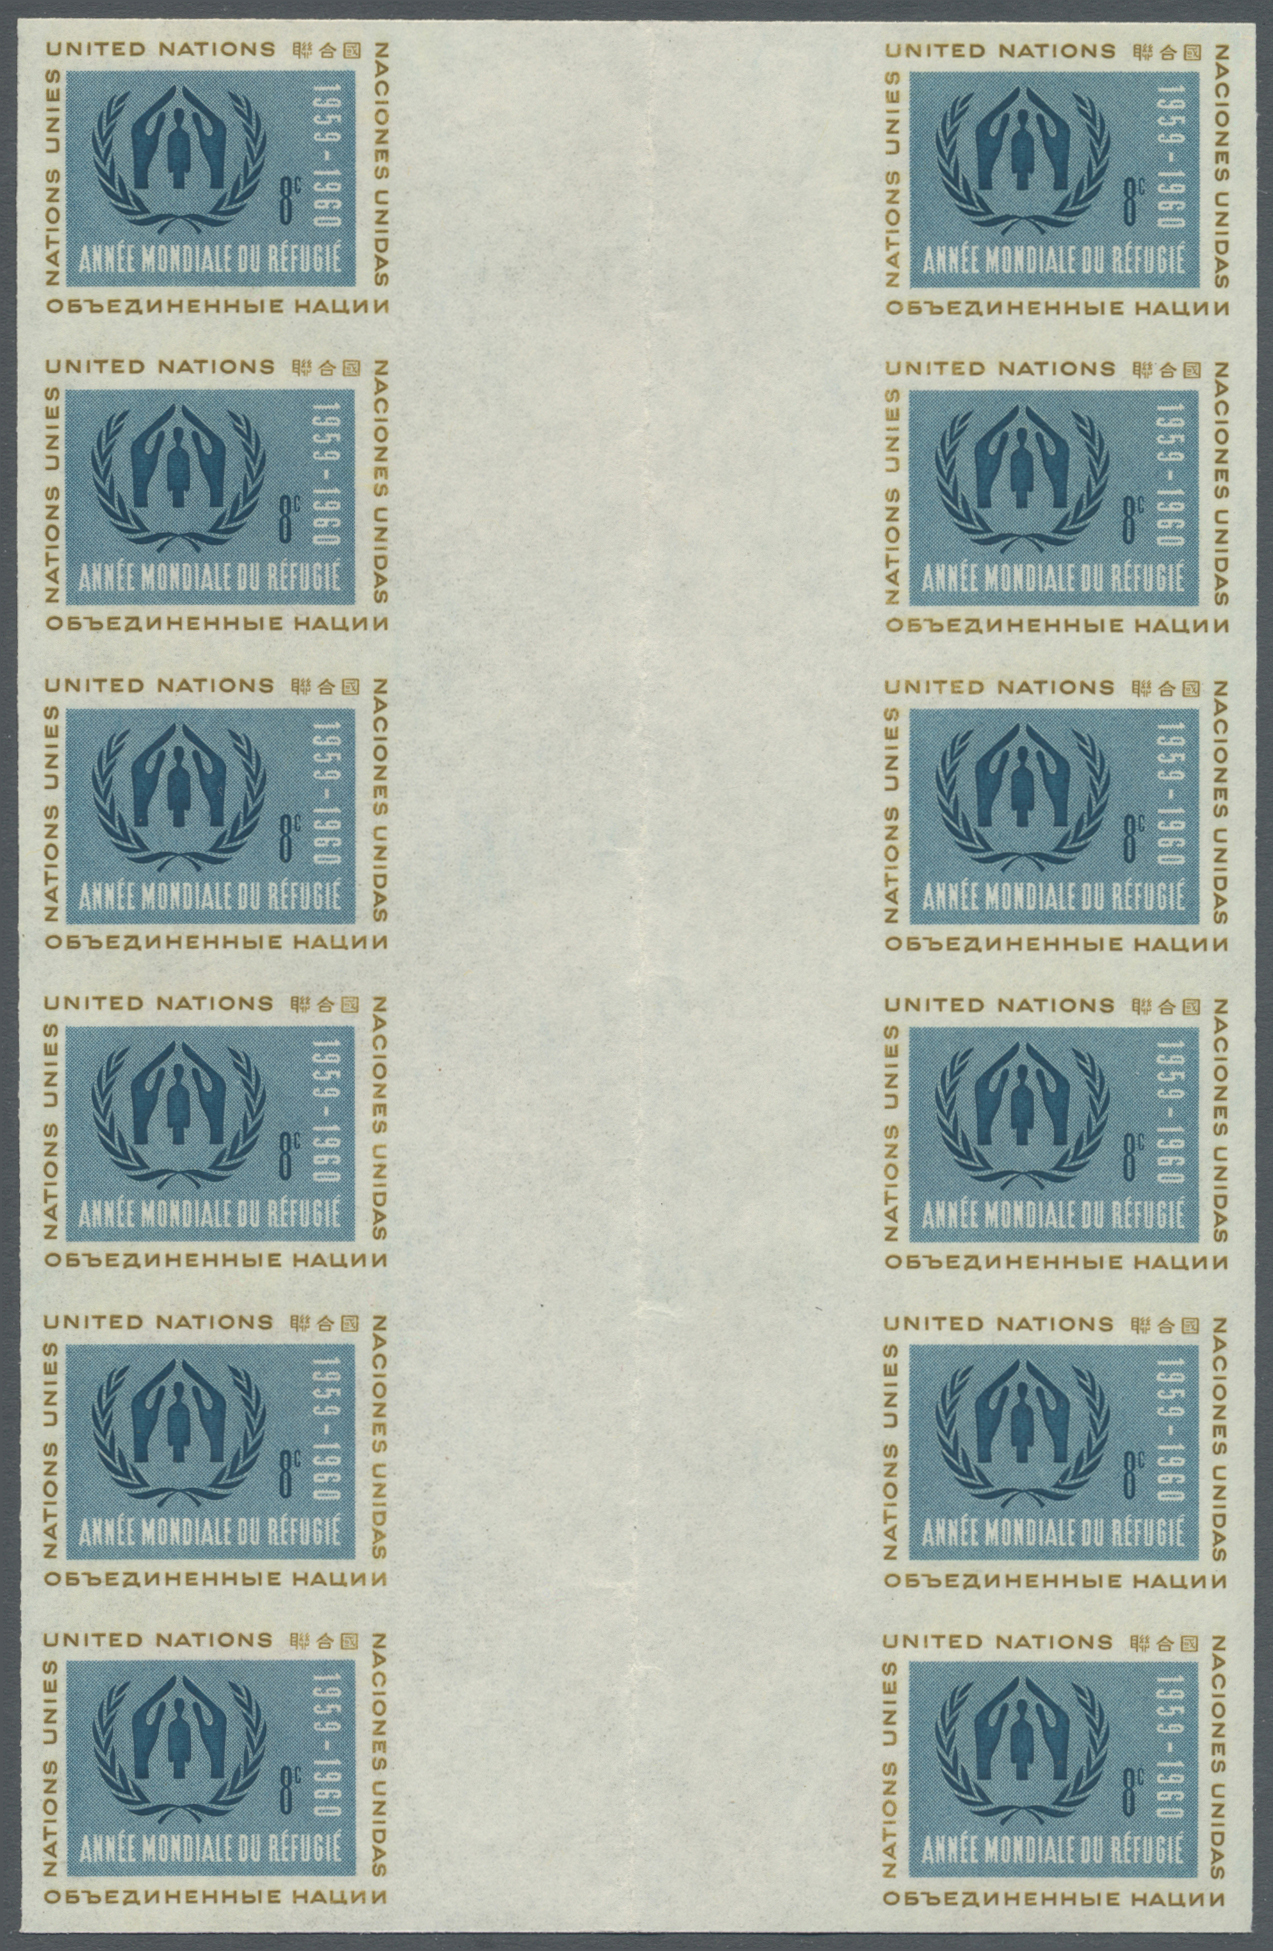 Lot 14796 - Vereinte Nationen - New York  -  Auktionshaus Christoph Gärtner GmbH & Co. KG Single lots Philately Overseas & Europe. Auction #39 Day 4